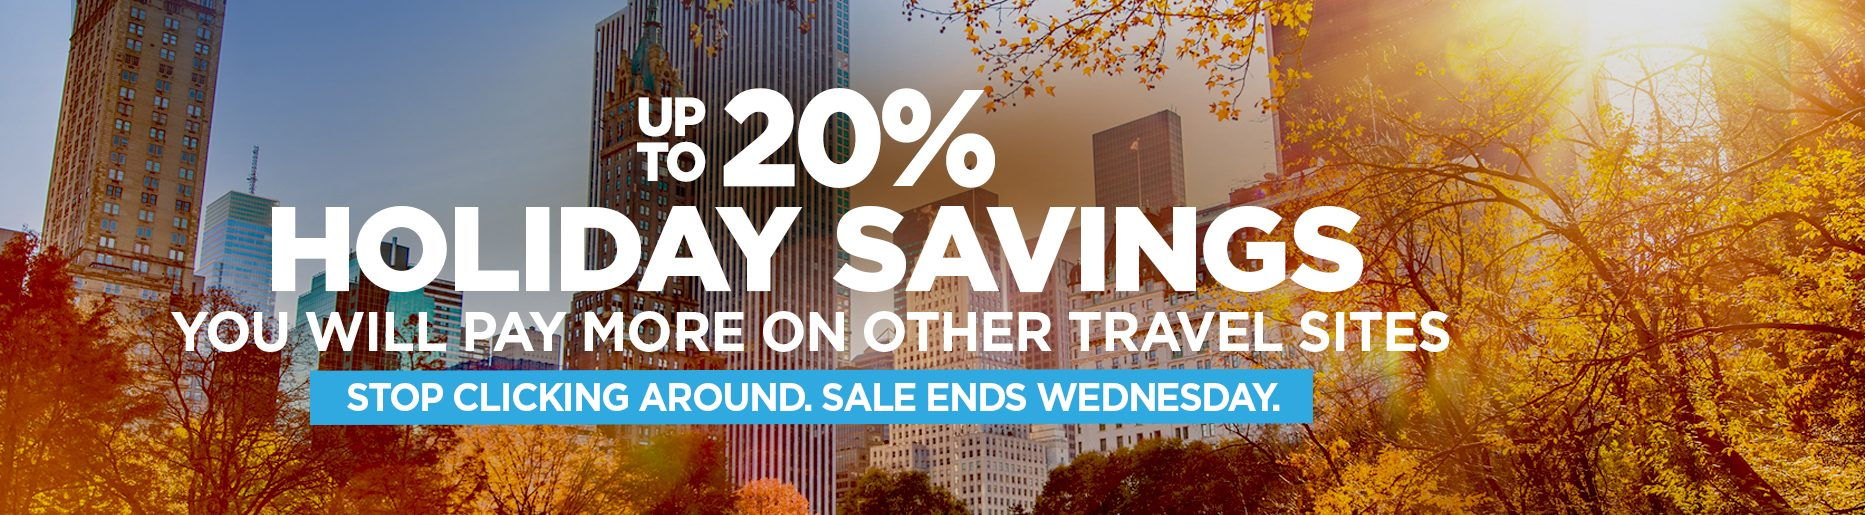 Hilton Honors November 2016 Flash Sale